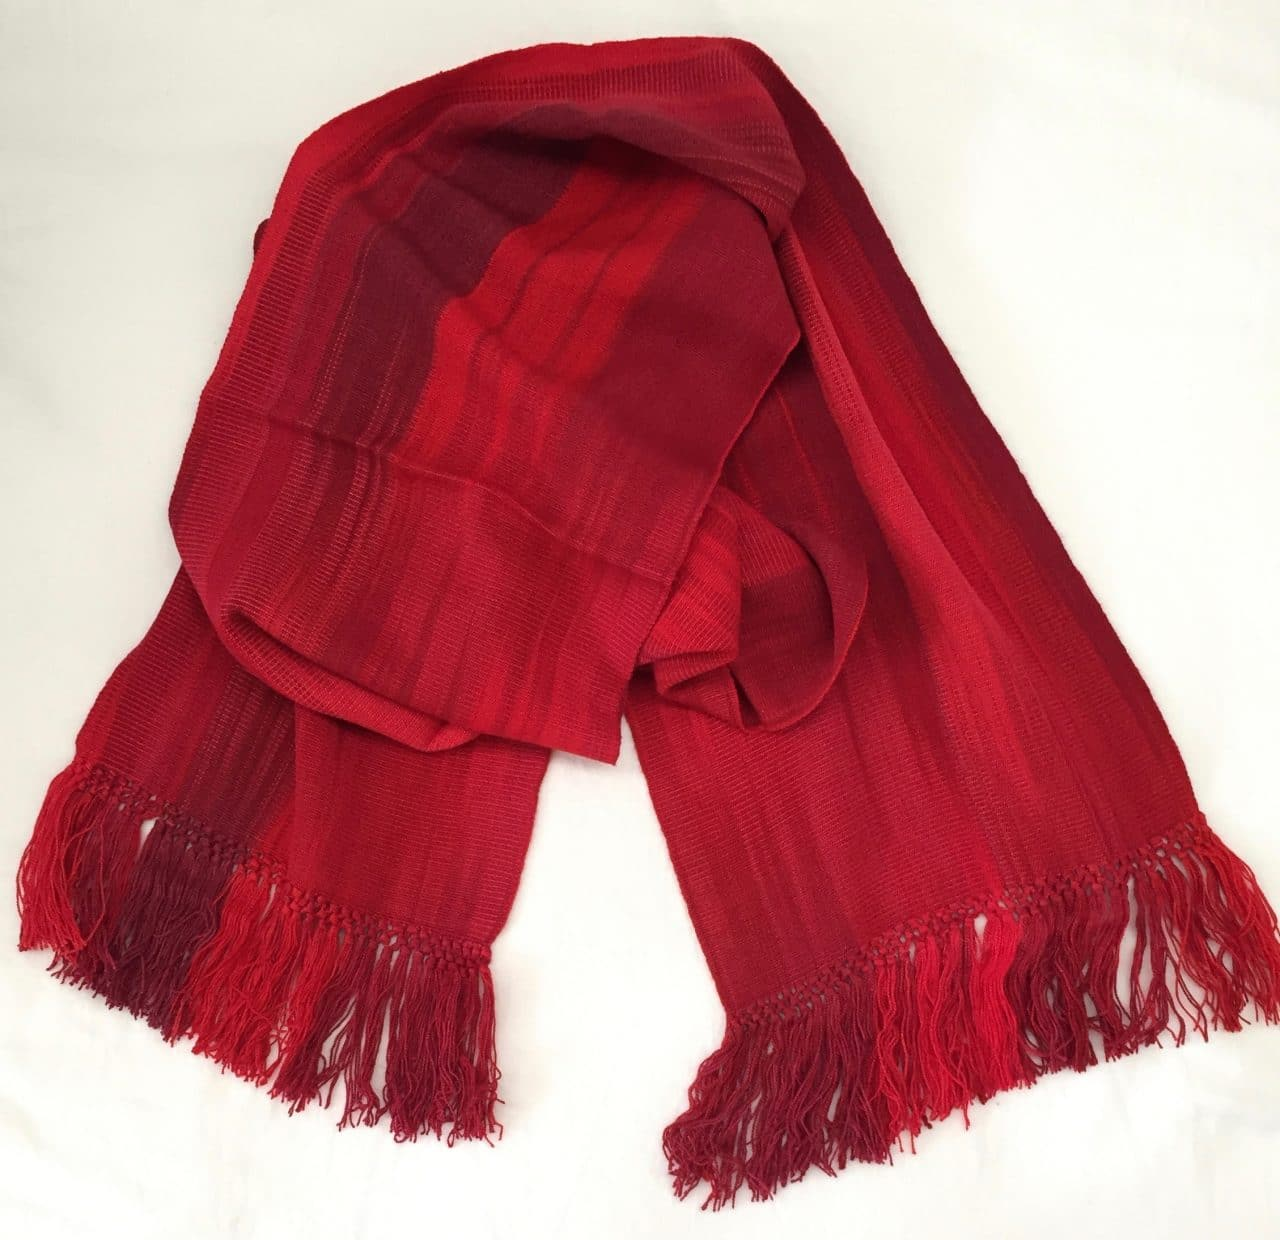 Reds (Bright!) - Lightweight Bamboo Handwoven Scarf 8 x 68